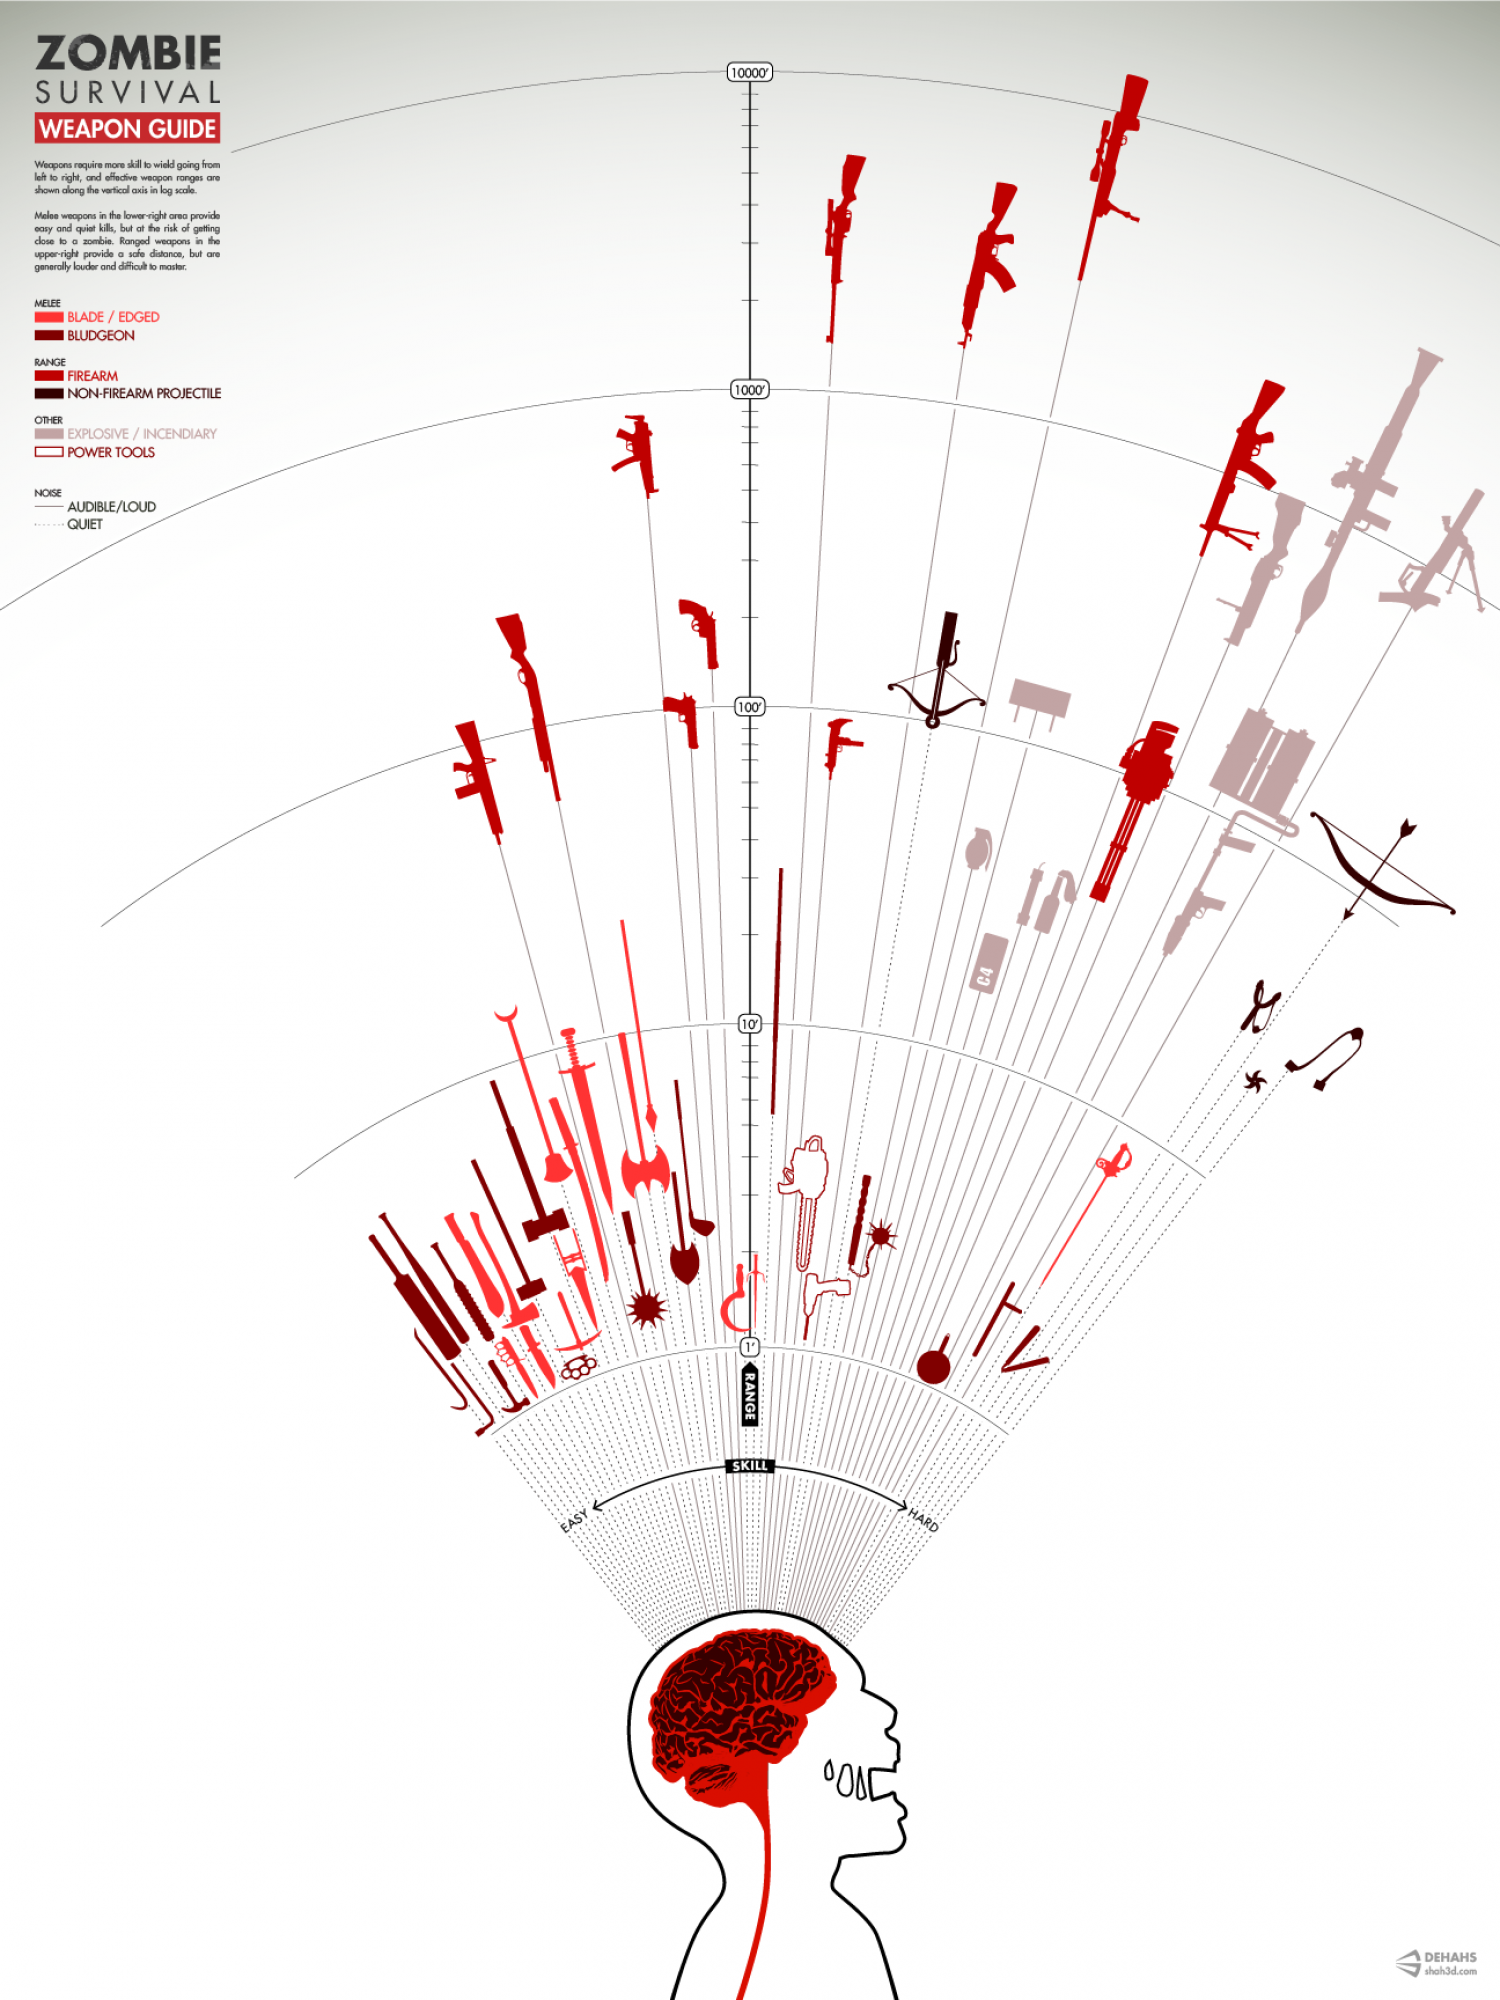 Zombie Survival Weapon Guide Infographic